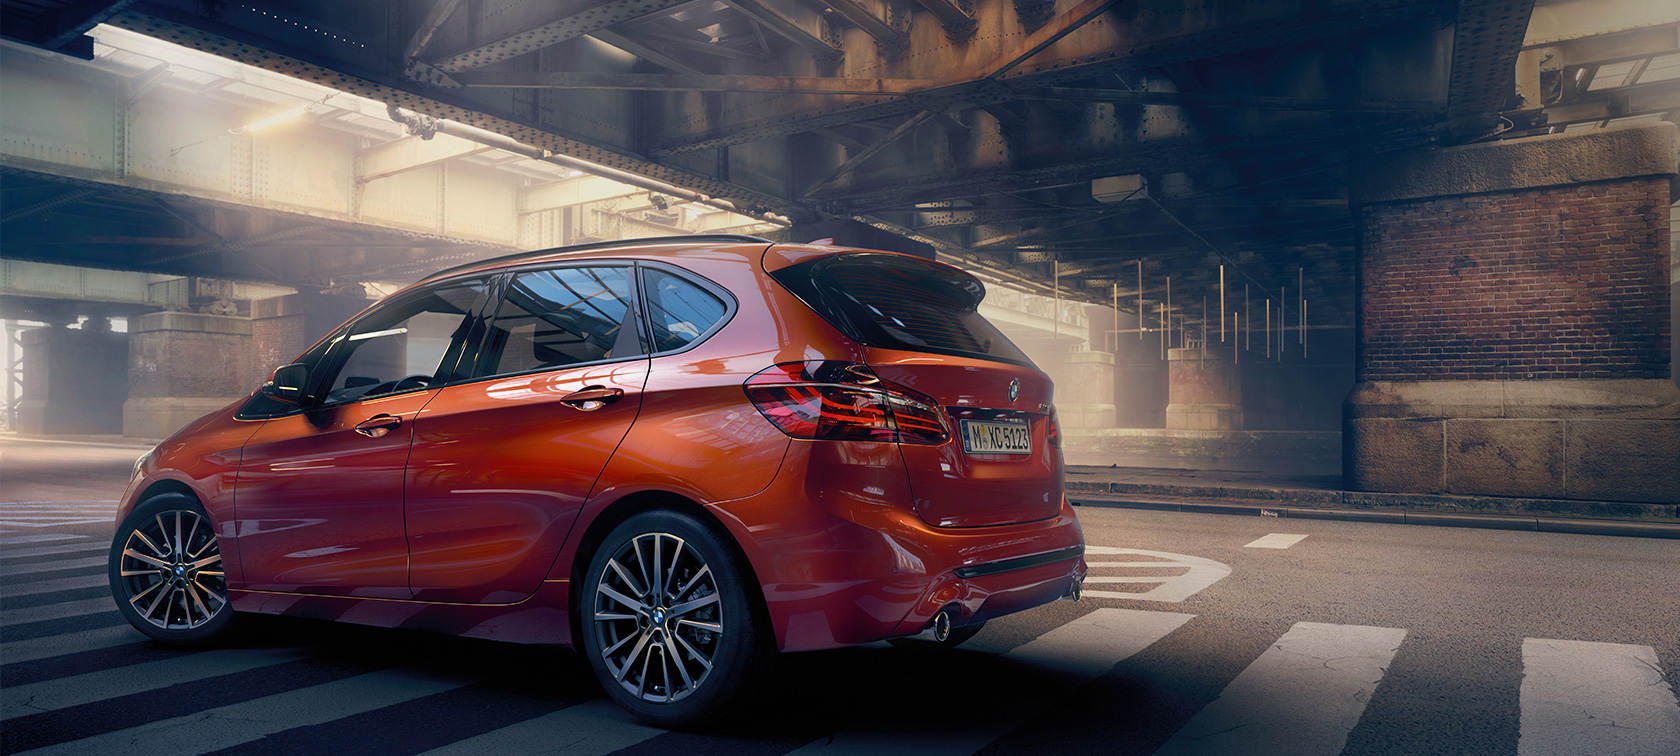 BMW 2-serie Active Tourer F45 Facelift 2018 Sunset Orange Metallic set fra siden i en hal